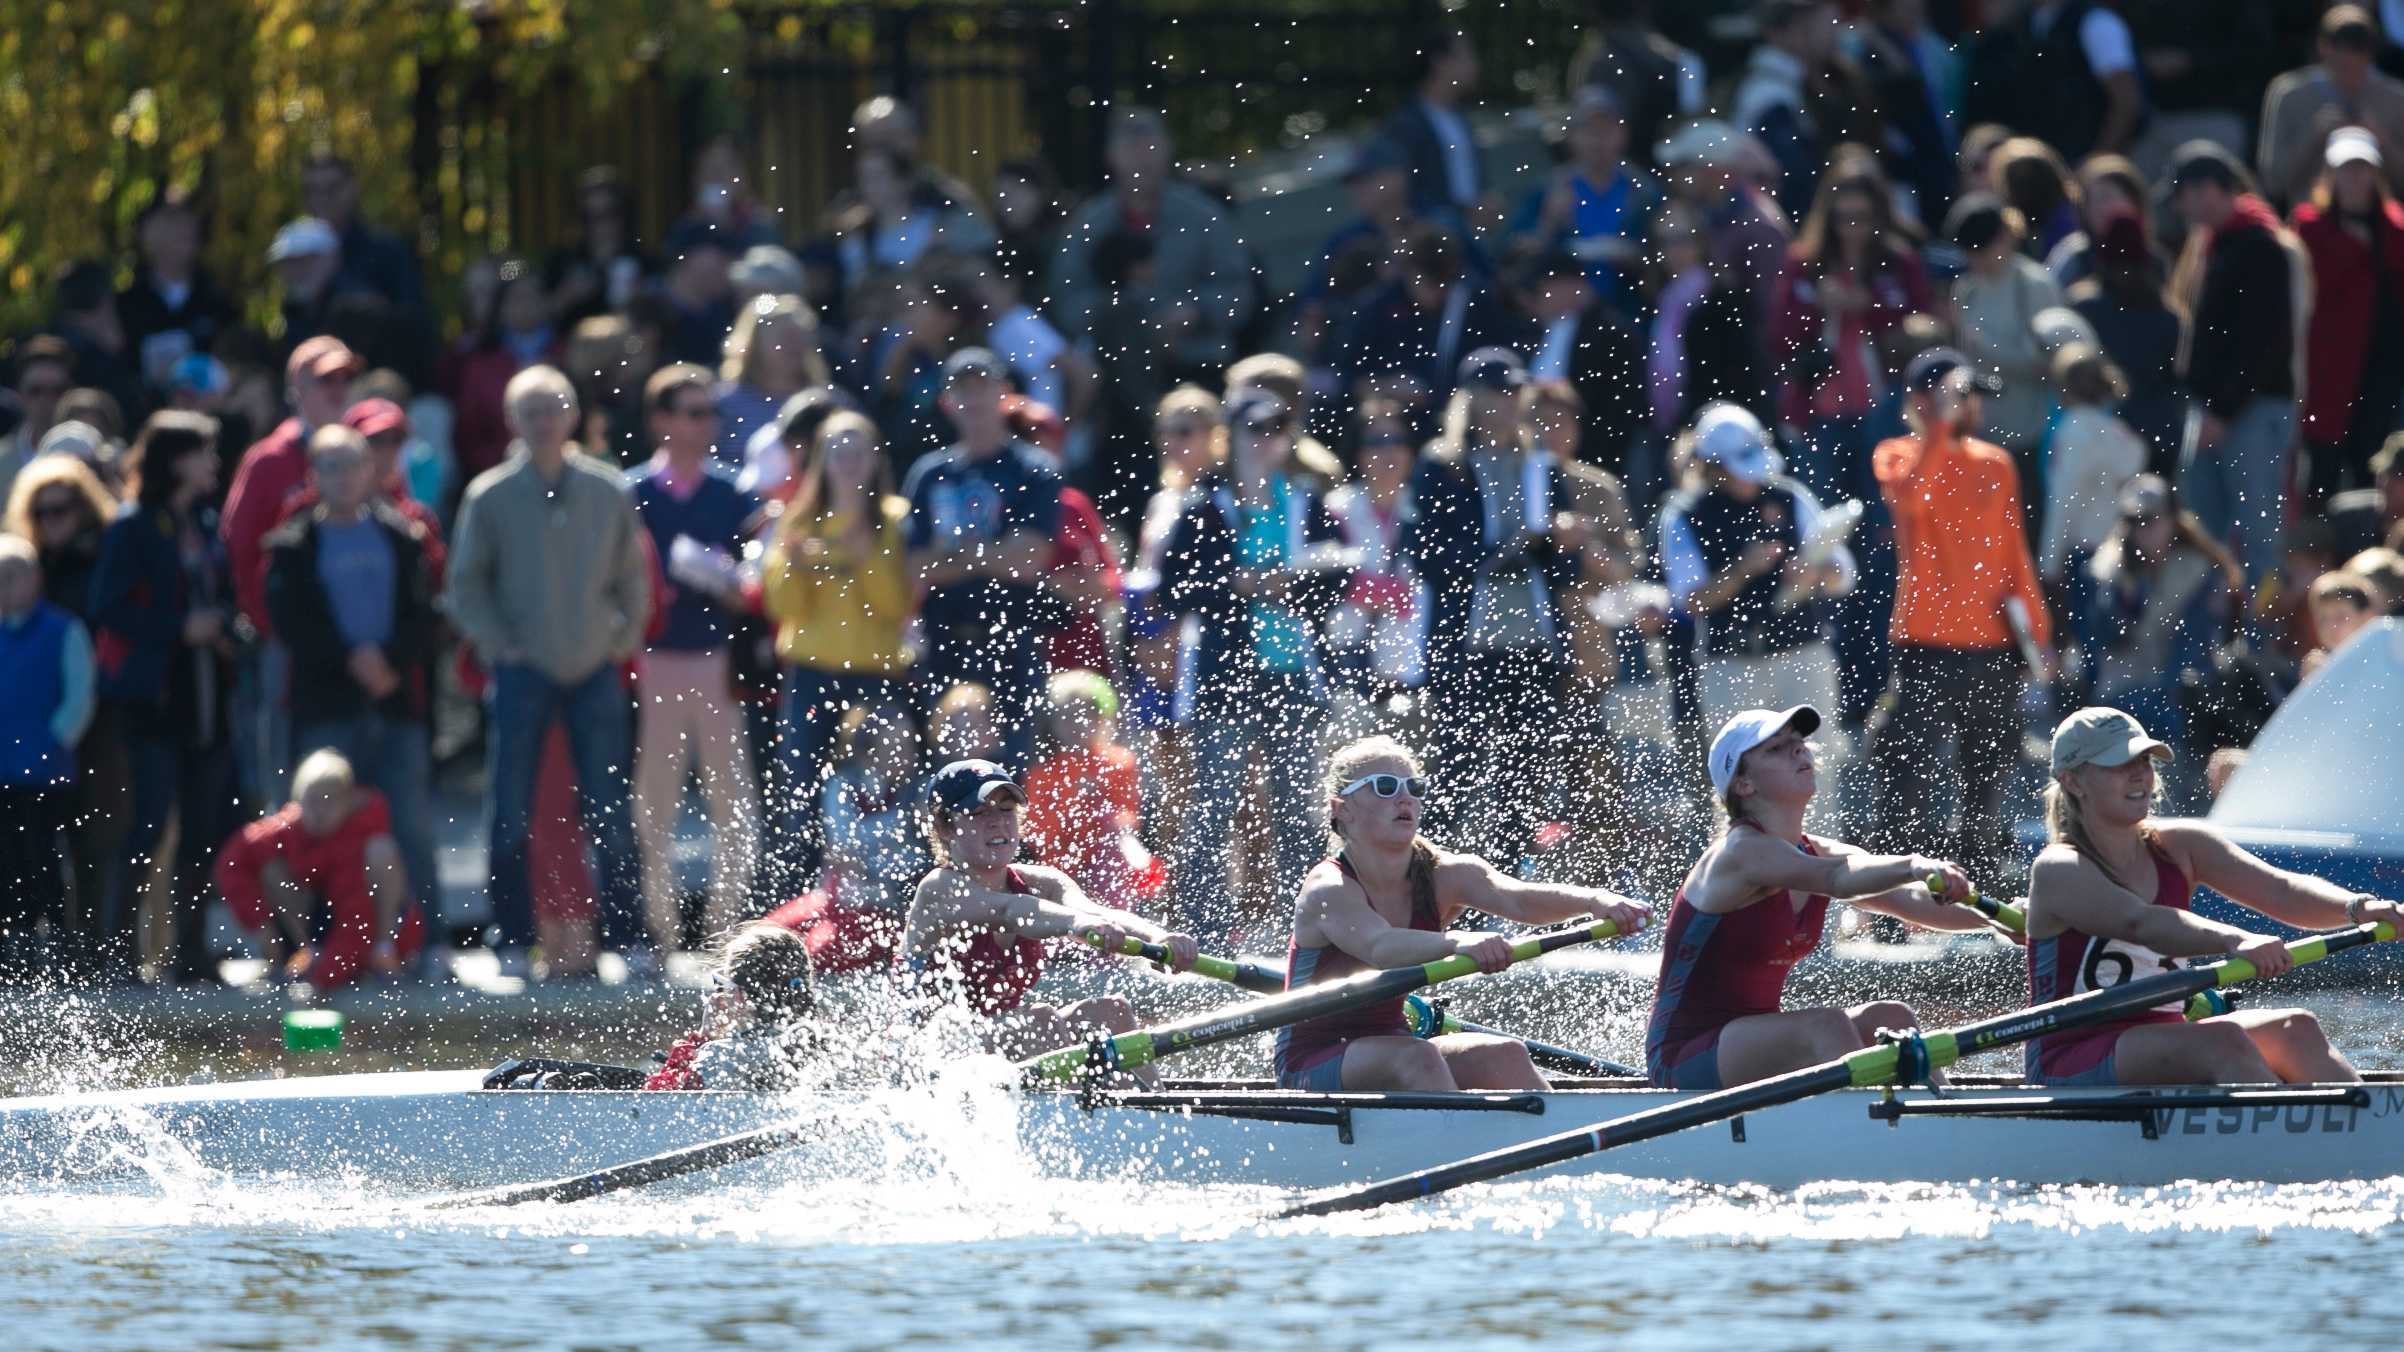 File photo: Head of the Charles Regatta